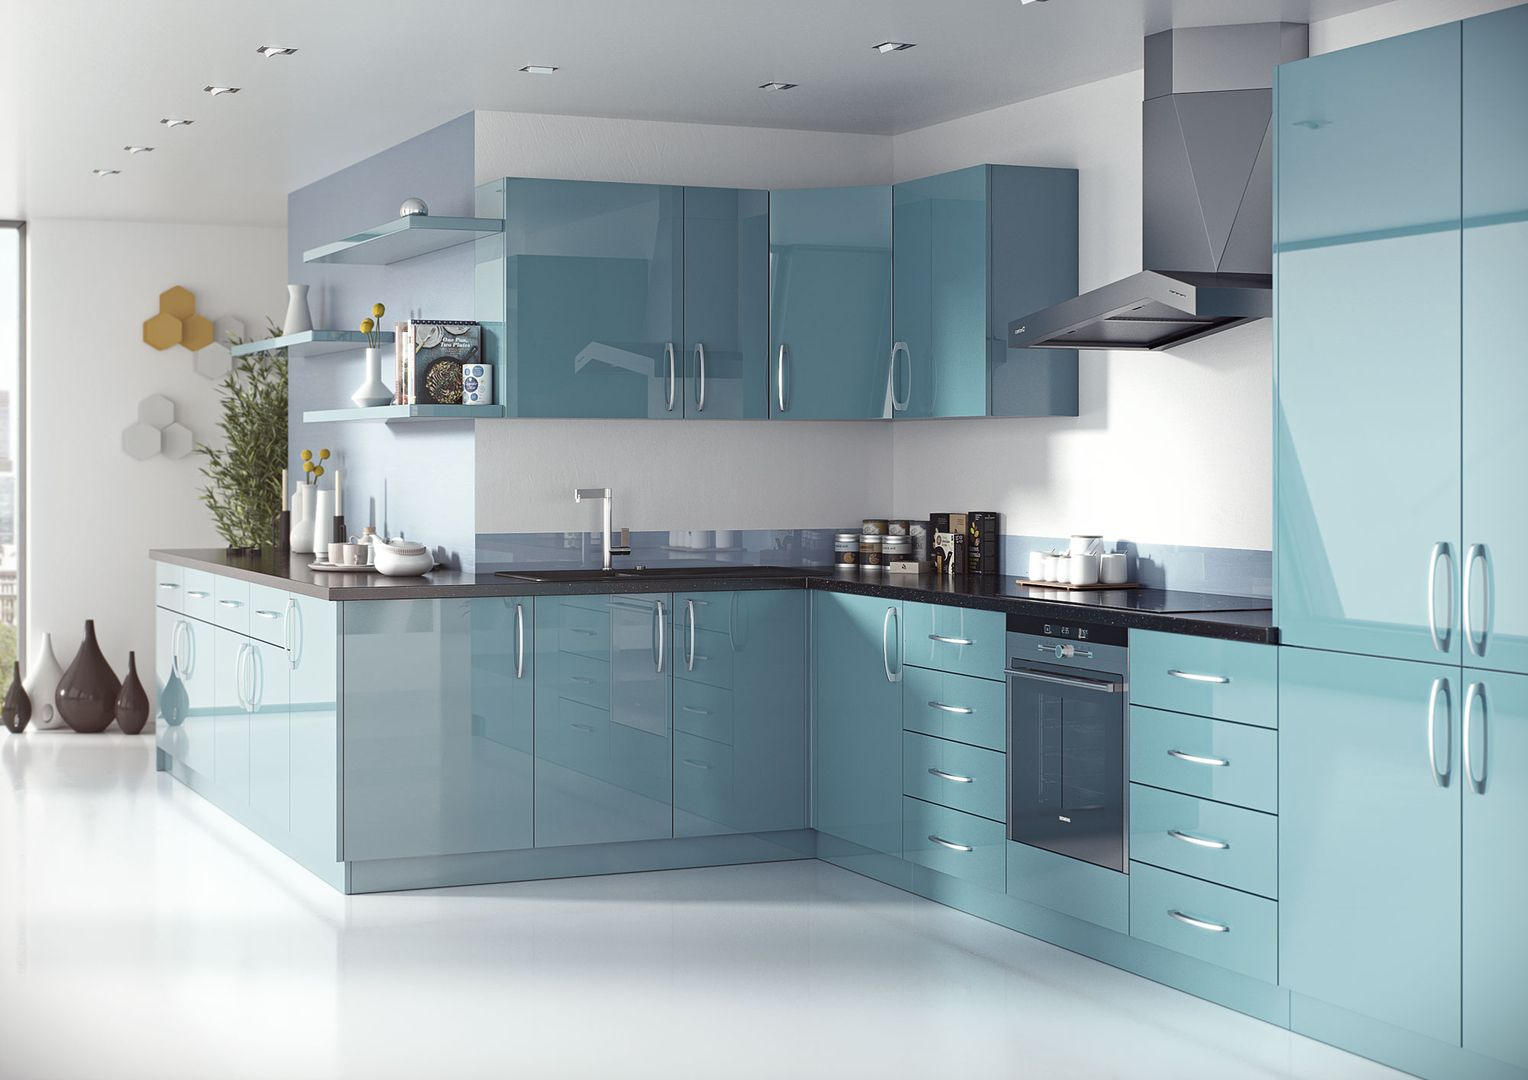 Esker Contemporary Kitchen Range | Wickes.co.uk | BW Kitchen ...